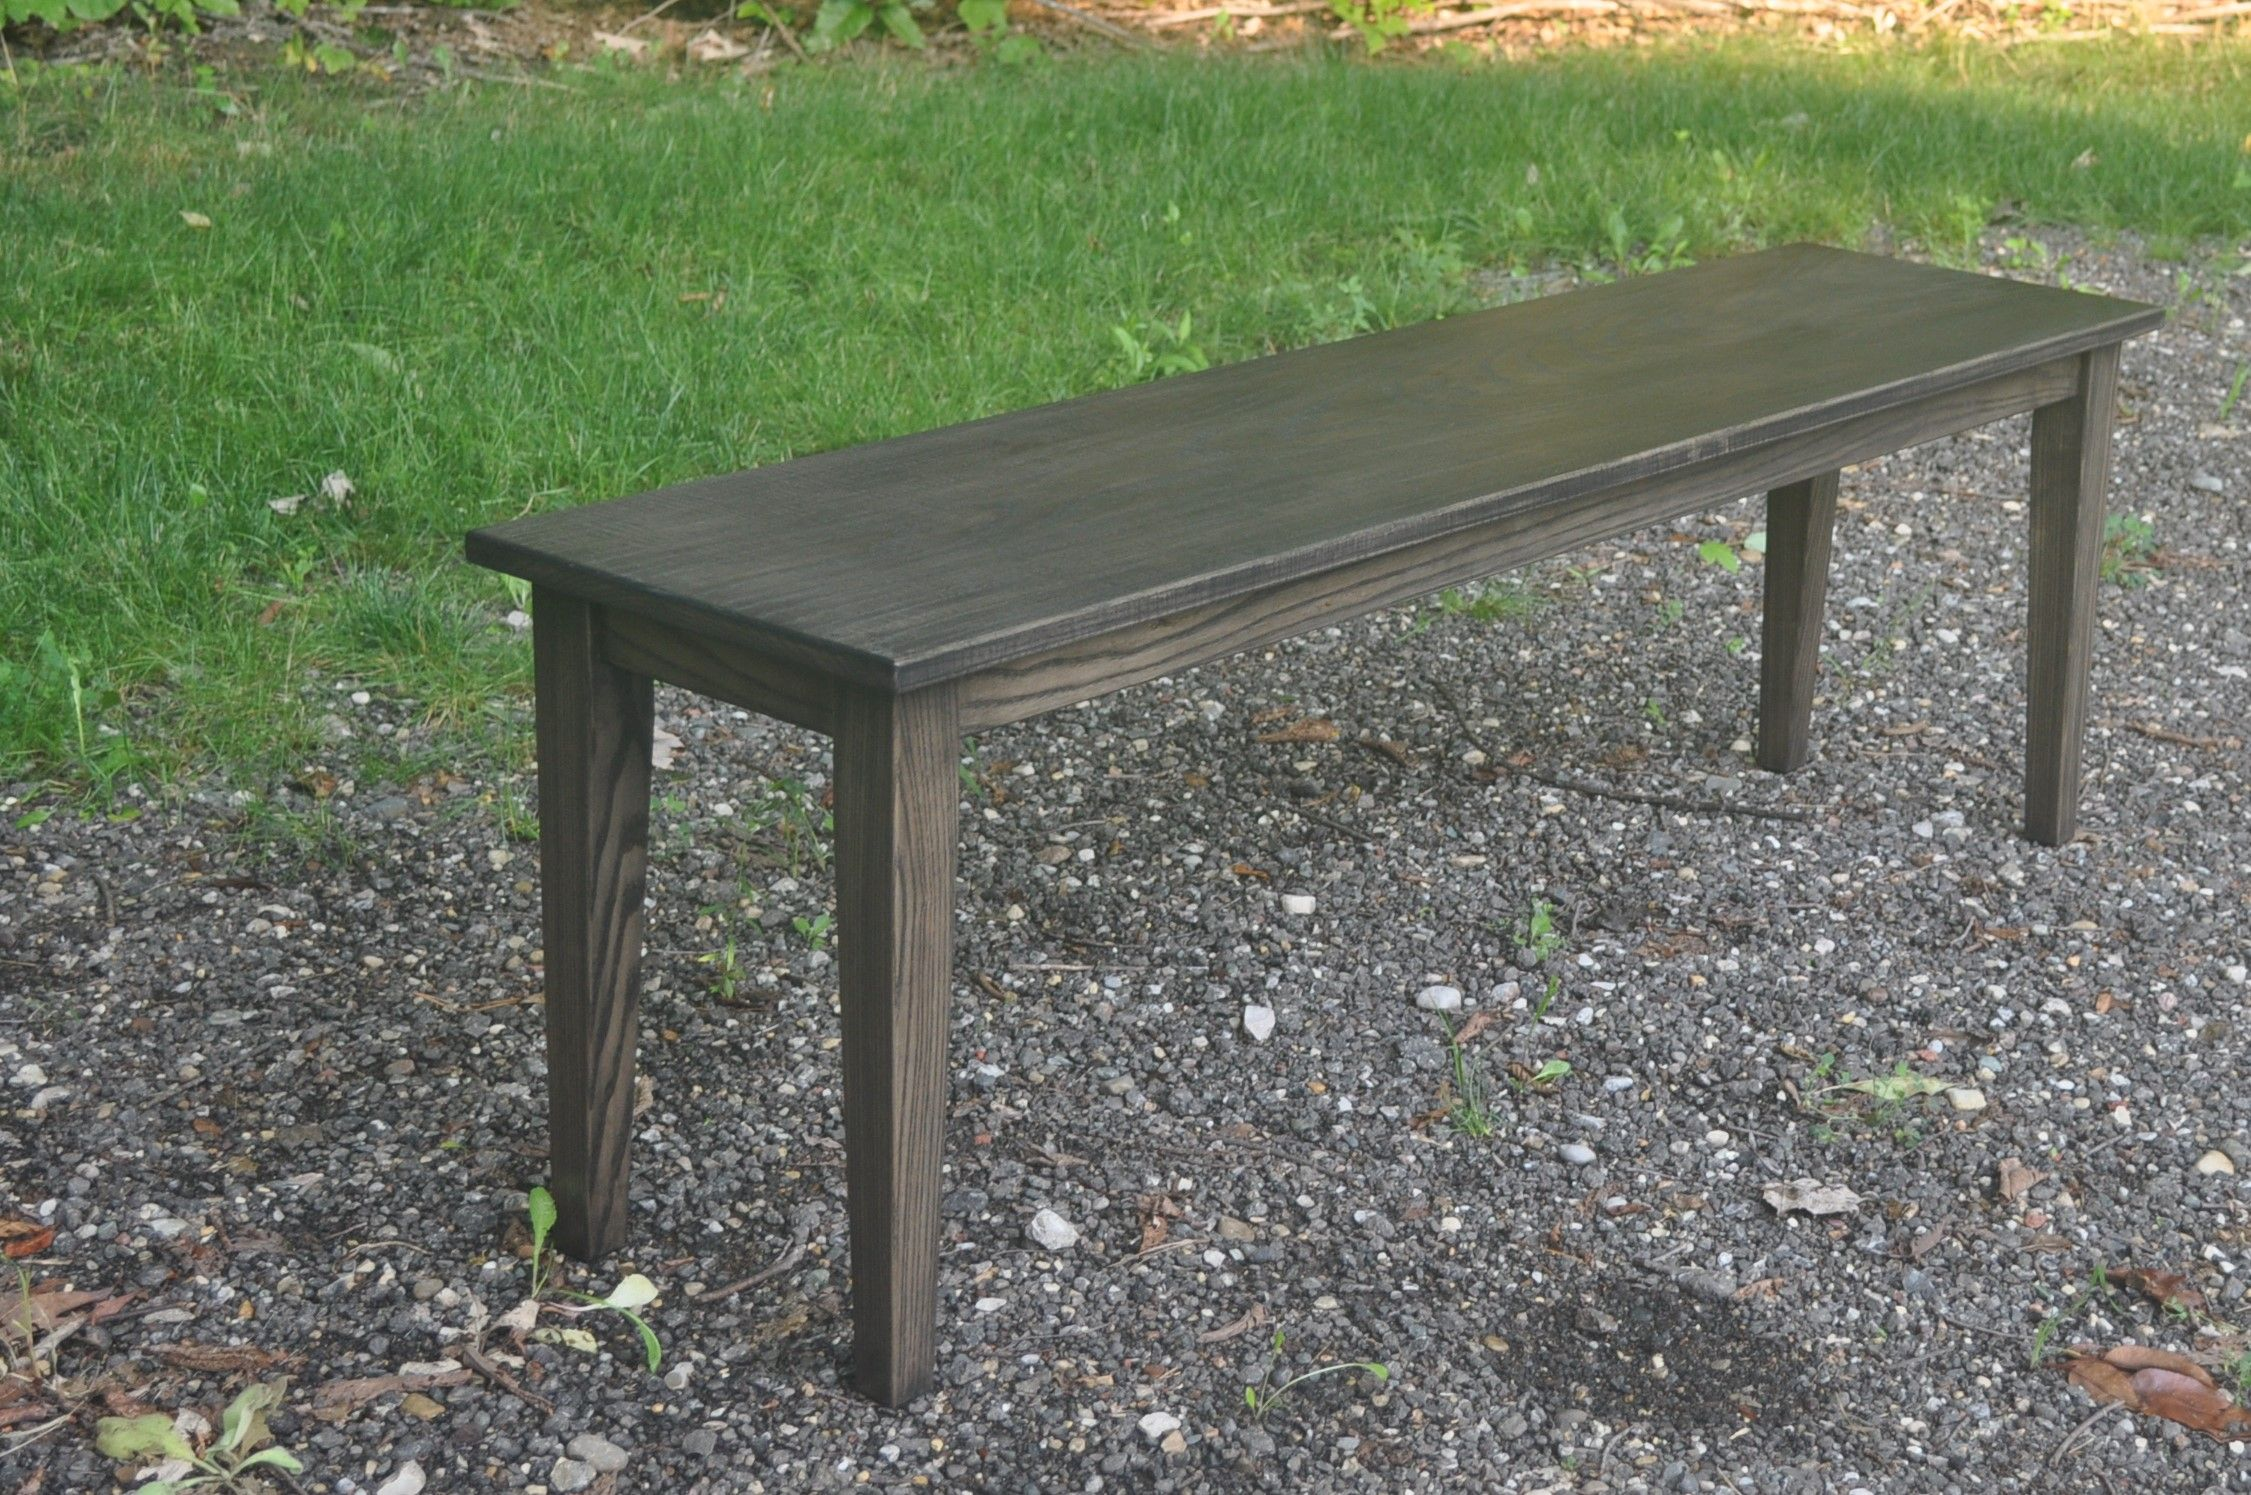 Stupendous Handmade Stained Ash Dining Table Bench Seat By Glessboards Download Free Architecture Designs Rallybritishbridgeorg